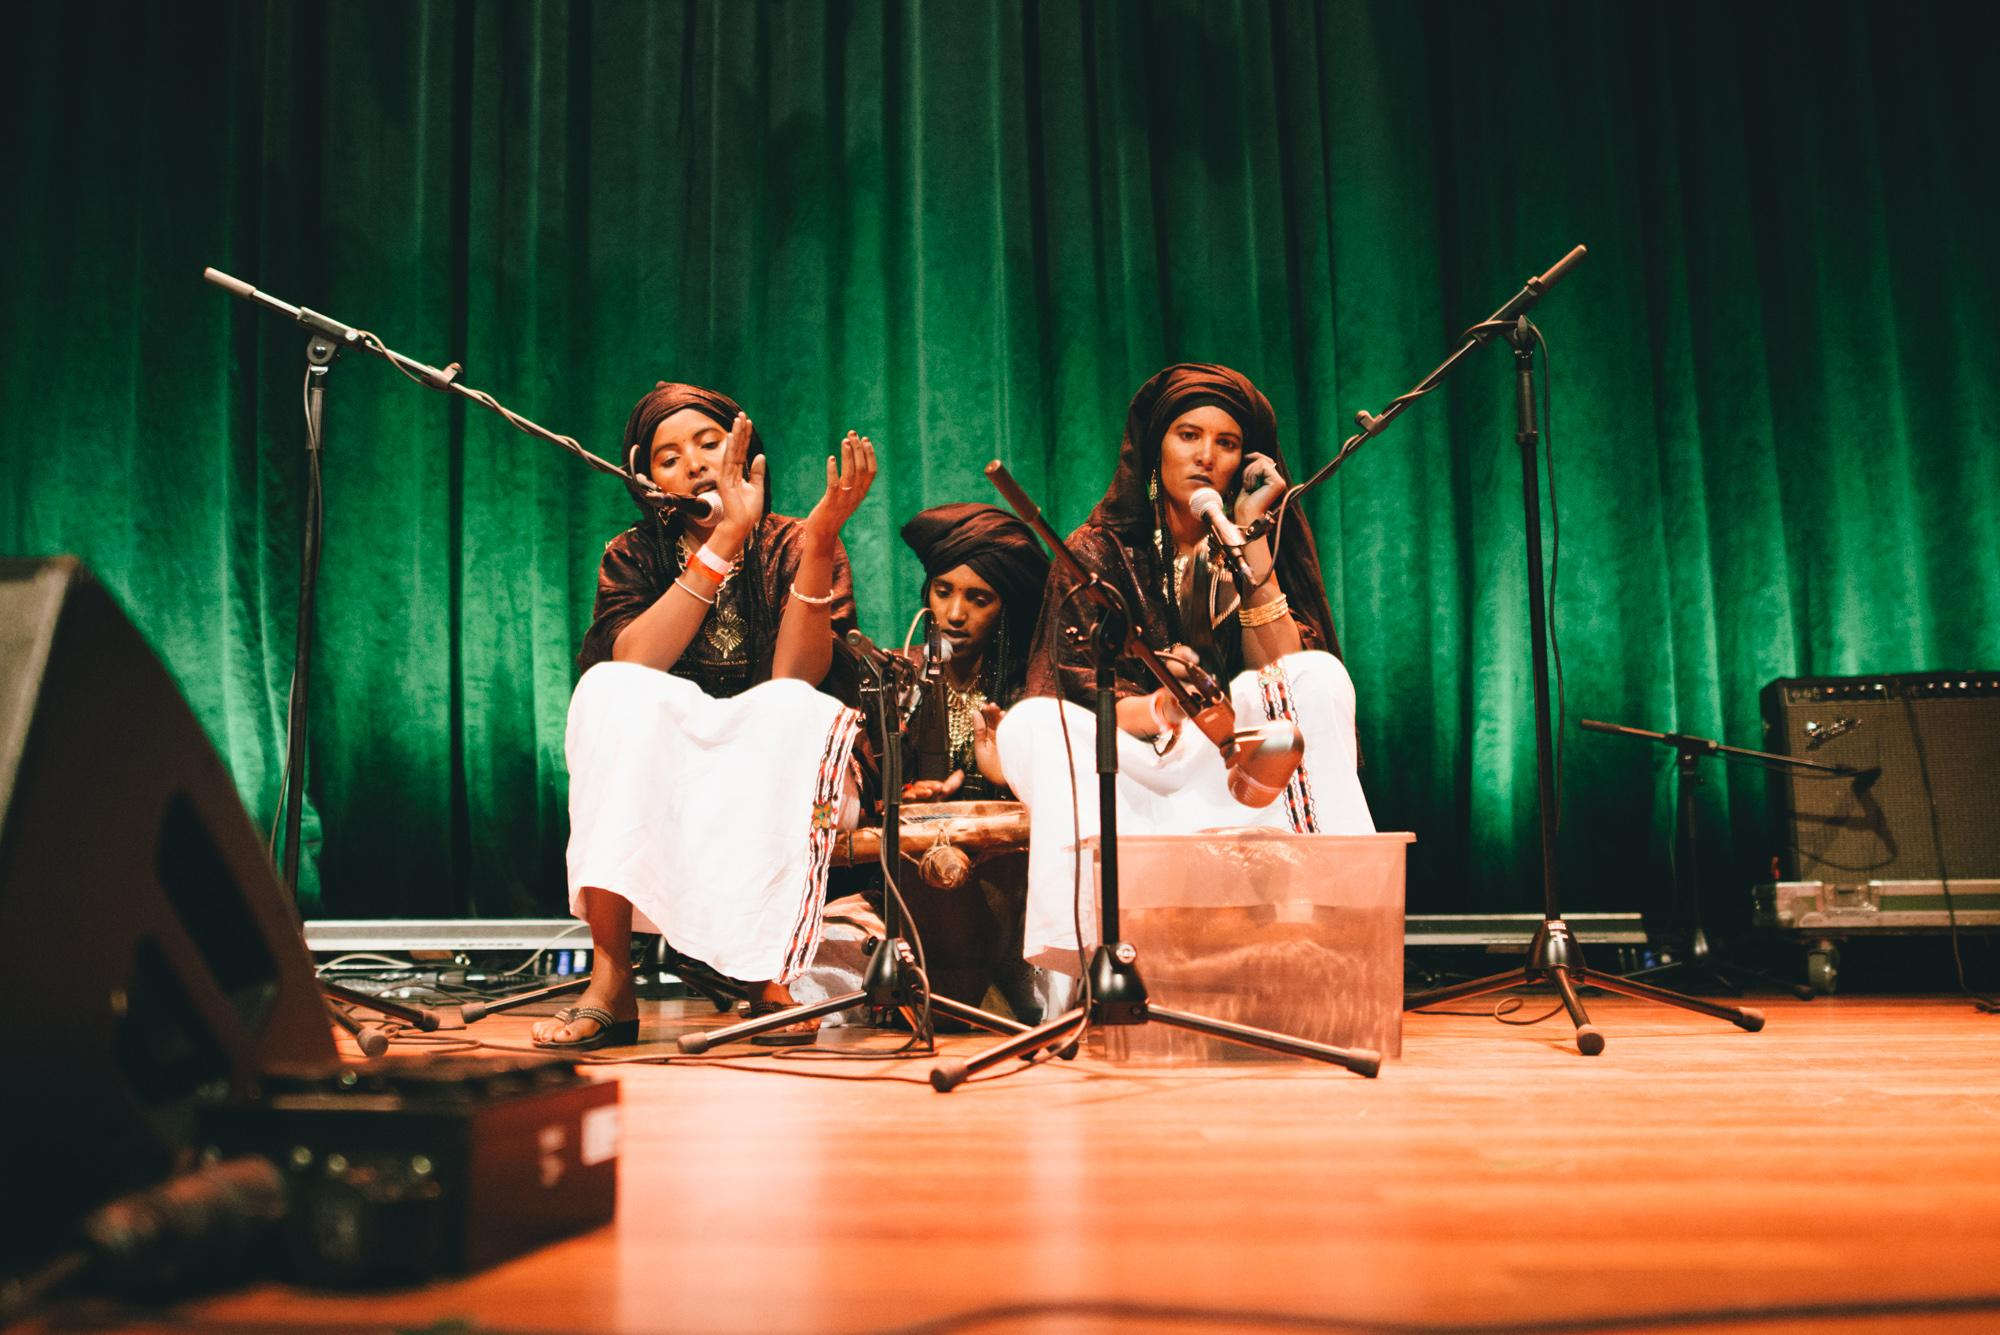 Listen: Pan African Music premieres the recordings of Les Filles de Illighadad at Le Guess Who? 2016